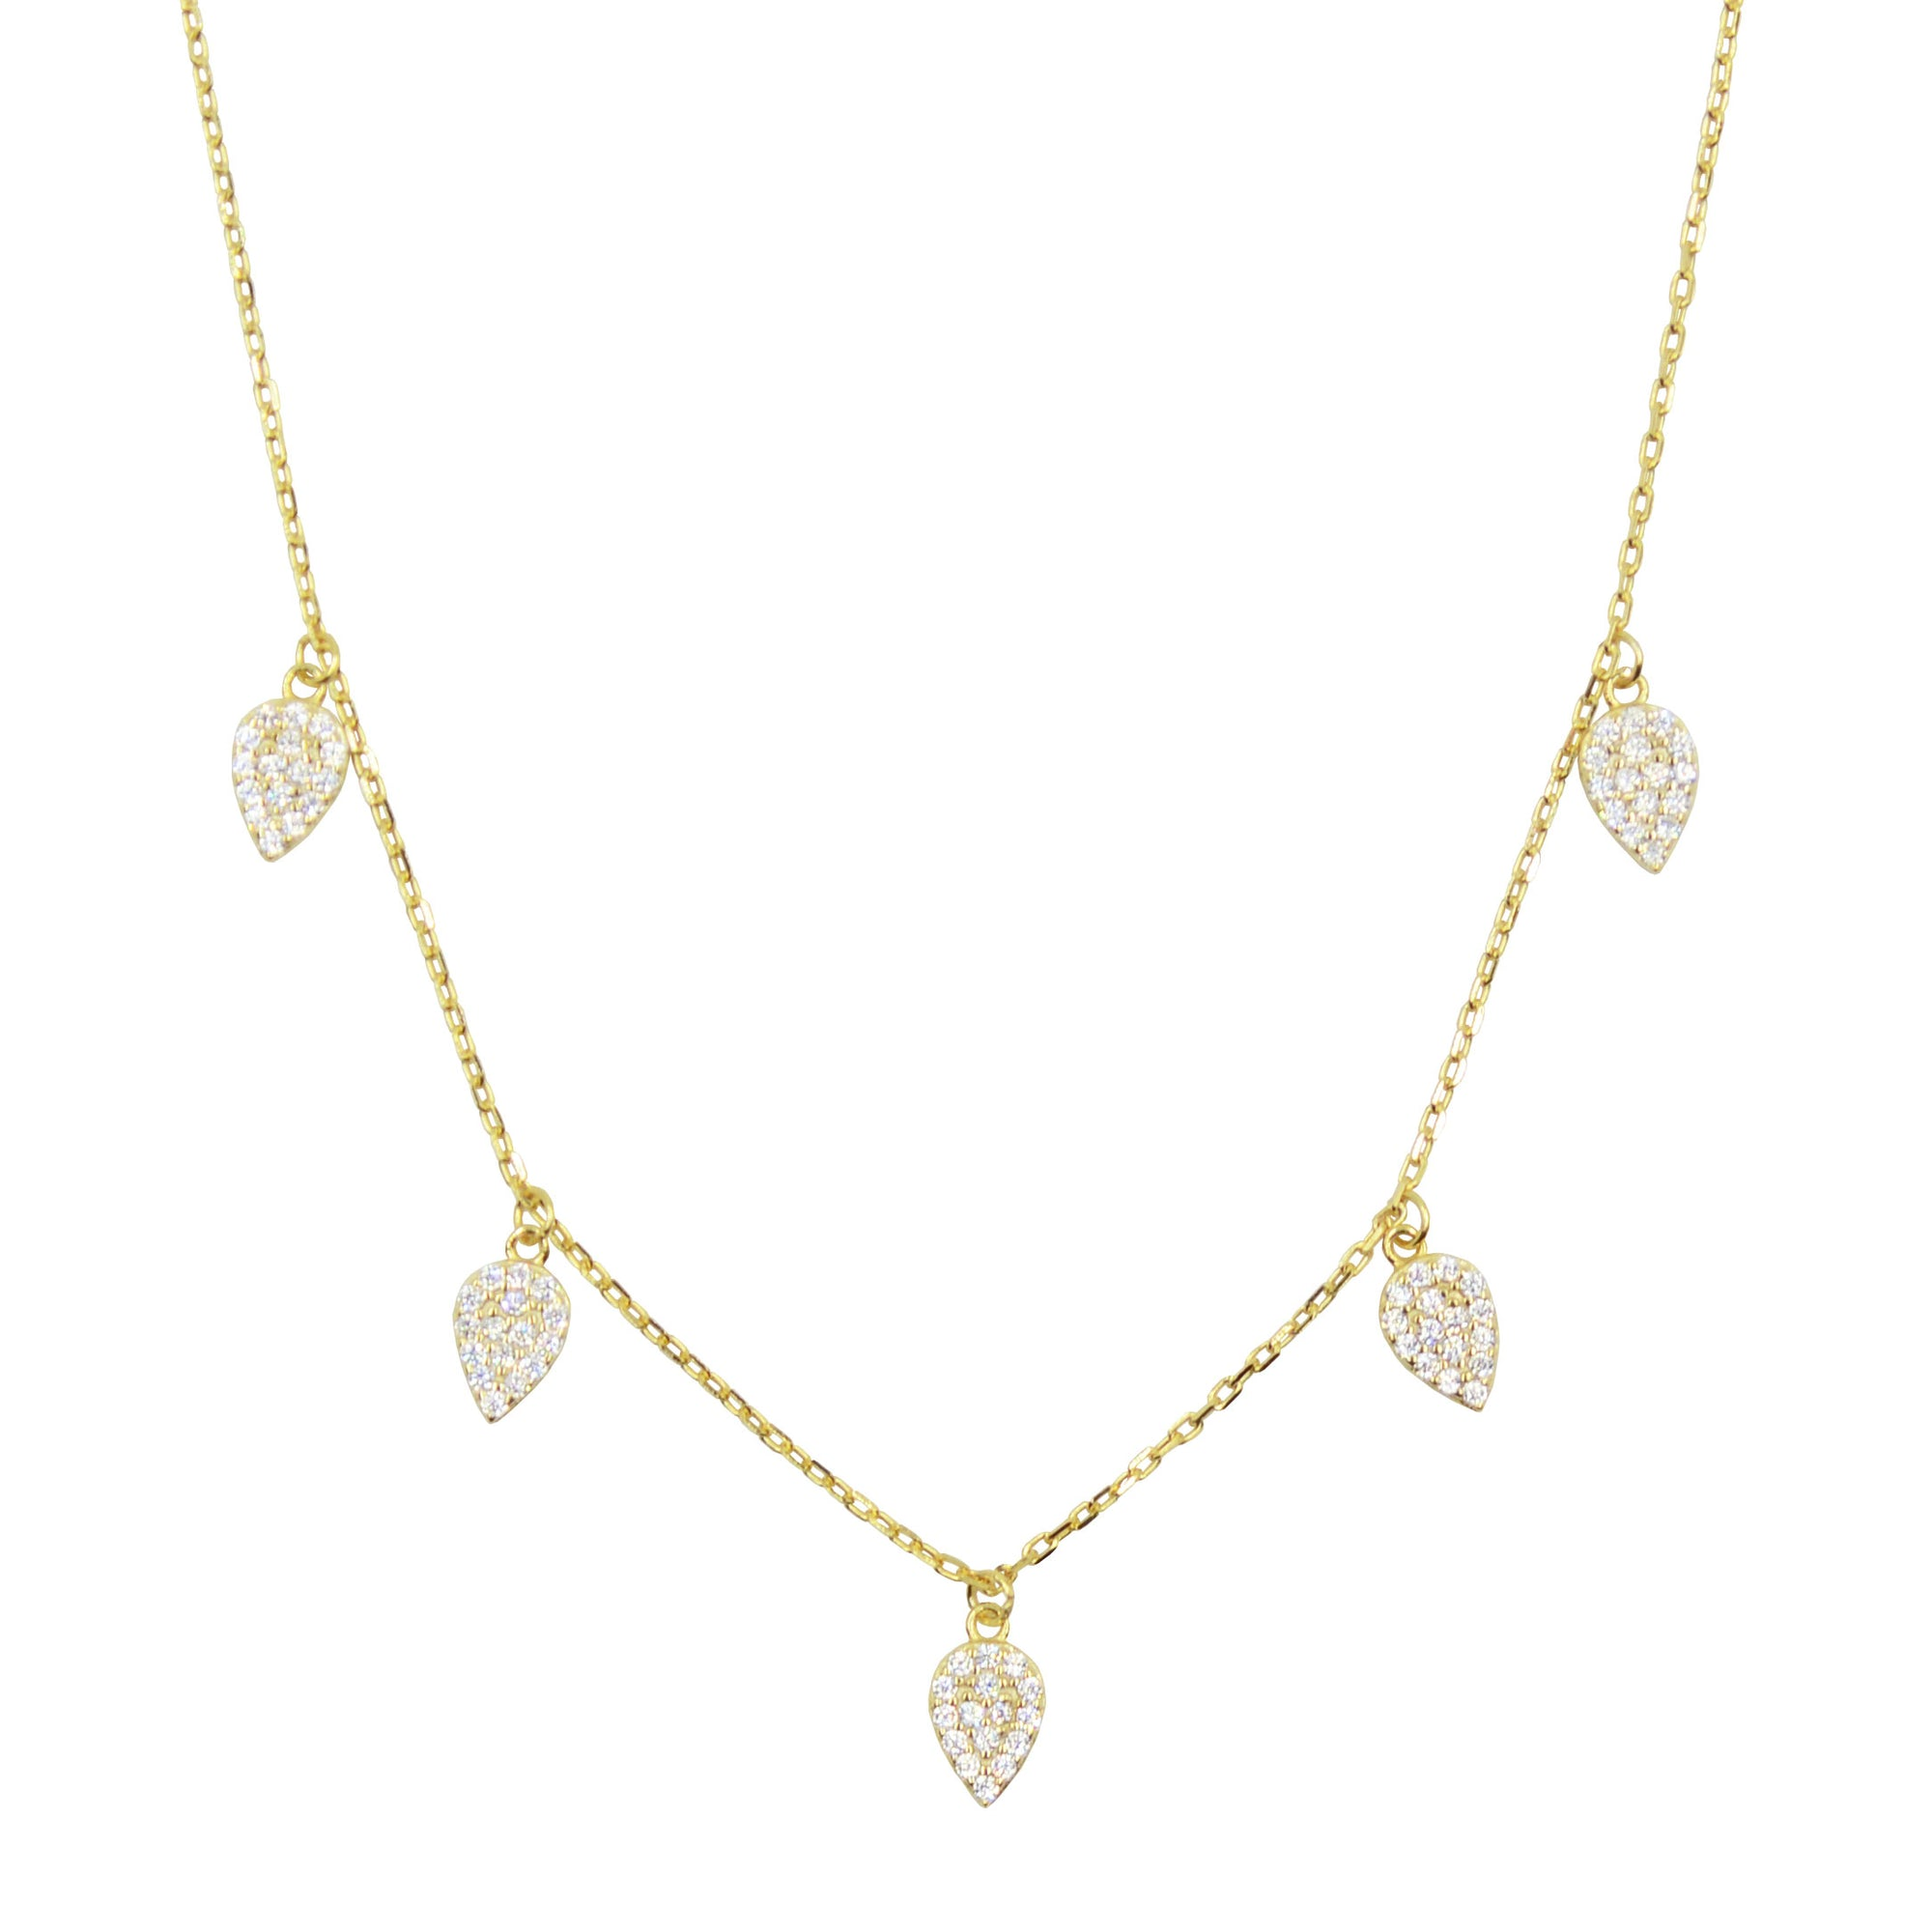 Blessings leaf choker necklace with crystals in yellow gold